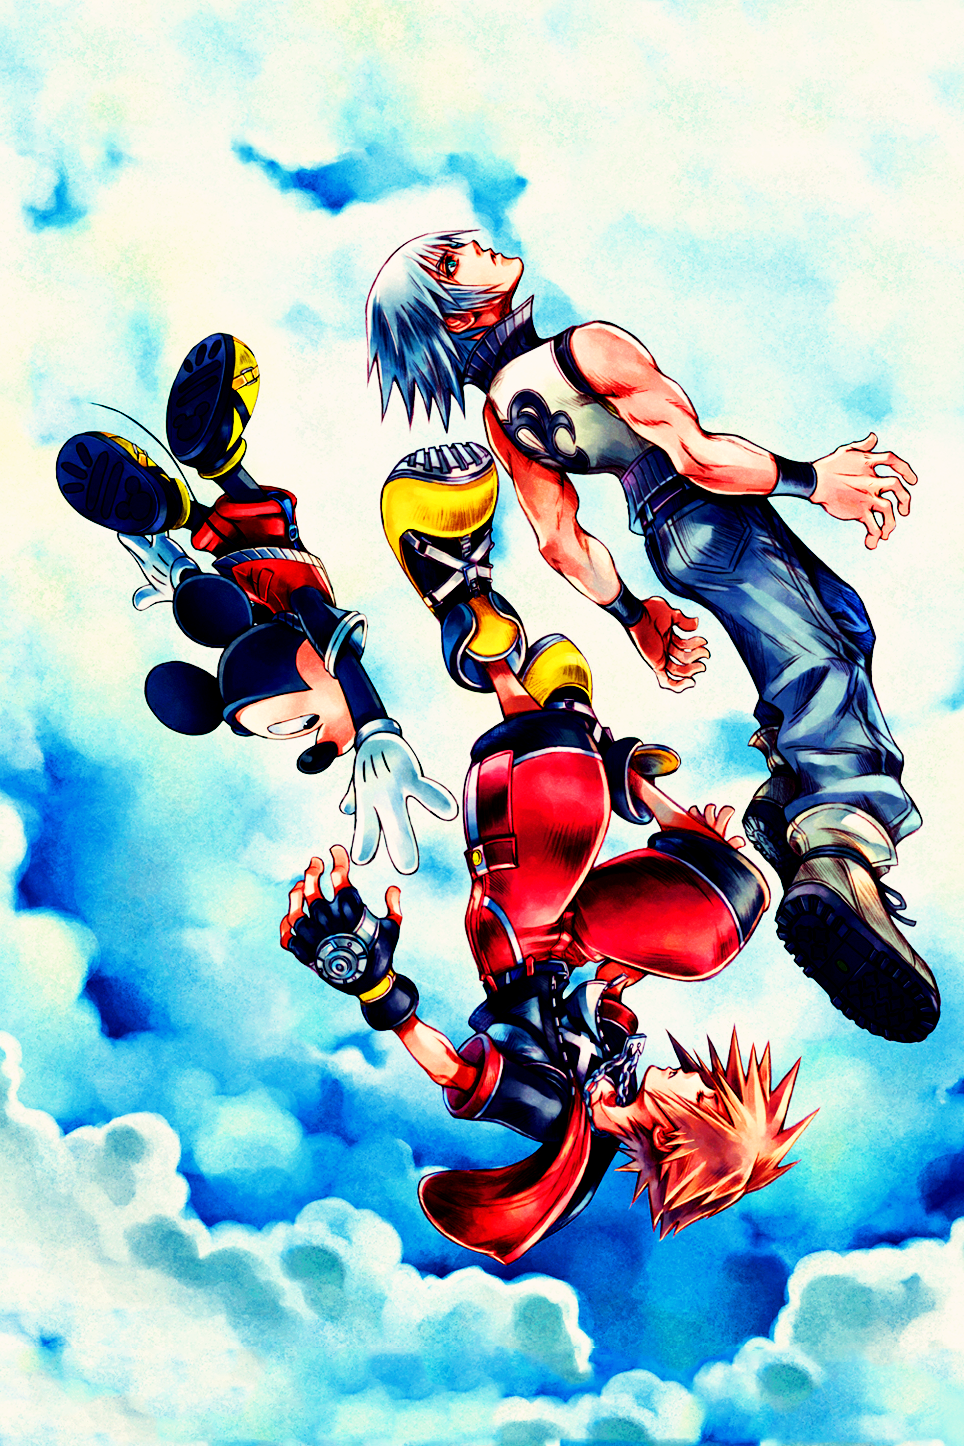 Iphone Wallpapers Kingdom Hearts Insider Kingdom Hearts Wallpaper Iphone Kingdom Hearts Art Kingdom Hearts Wallpaper